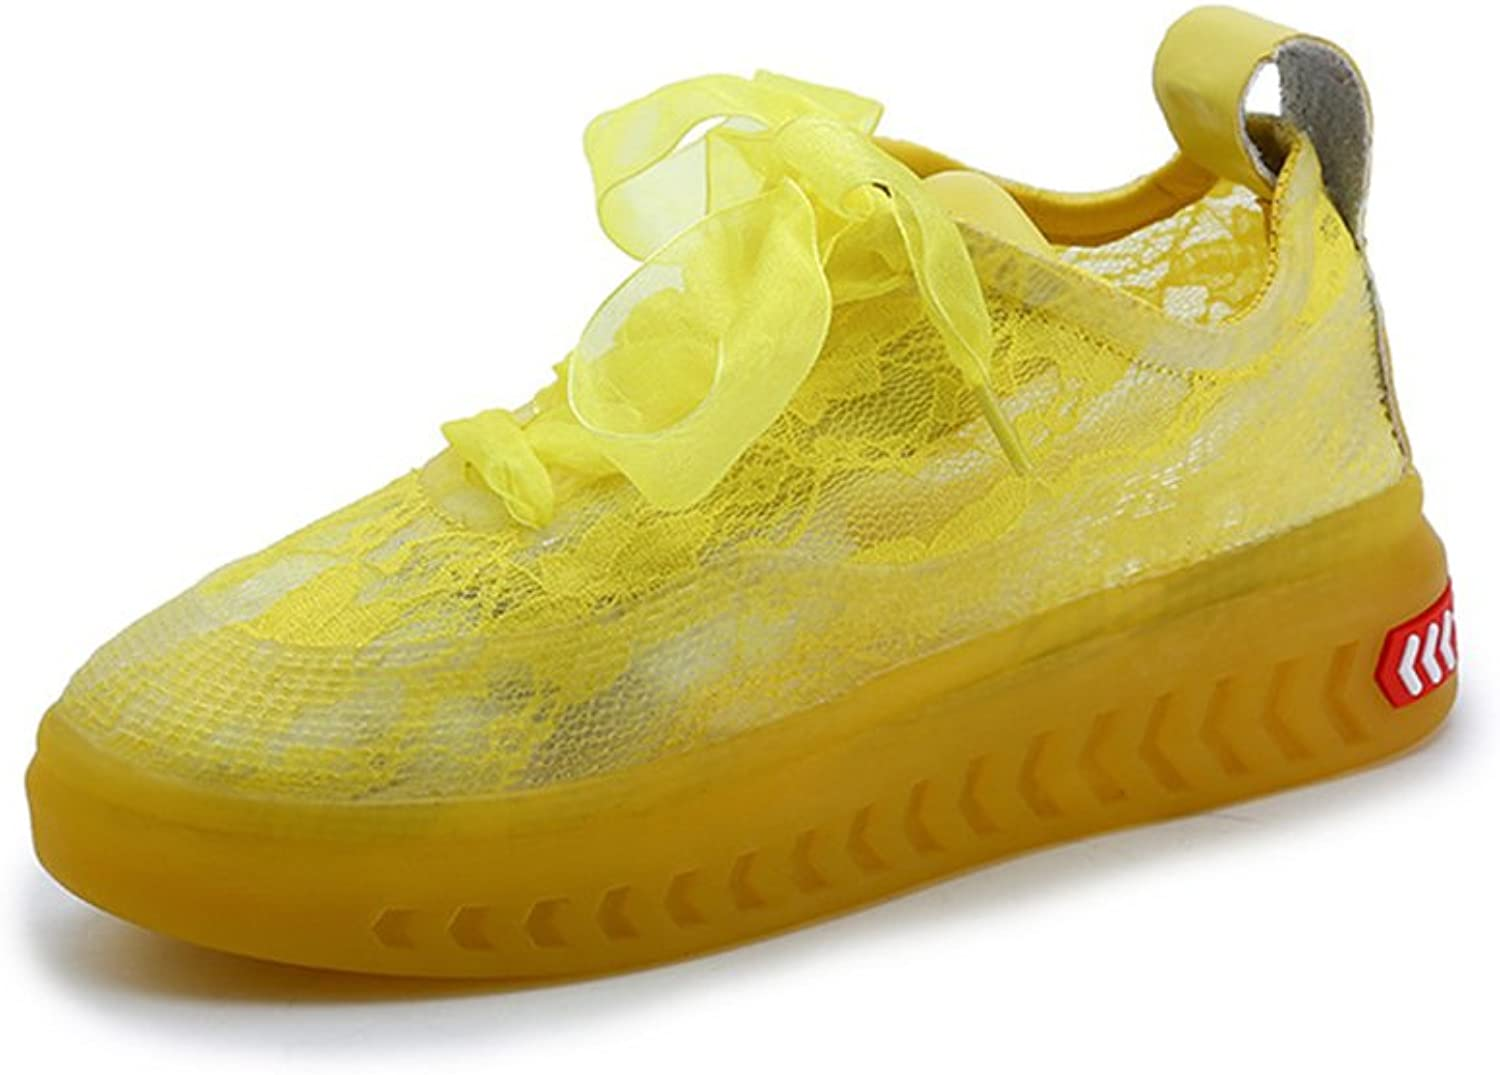 Excellent.c Running shoes Lady Balloon Breathable Outdoor Sports Lightweight Cushioning Walking shoes